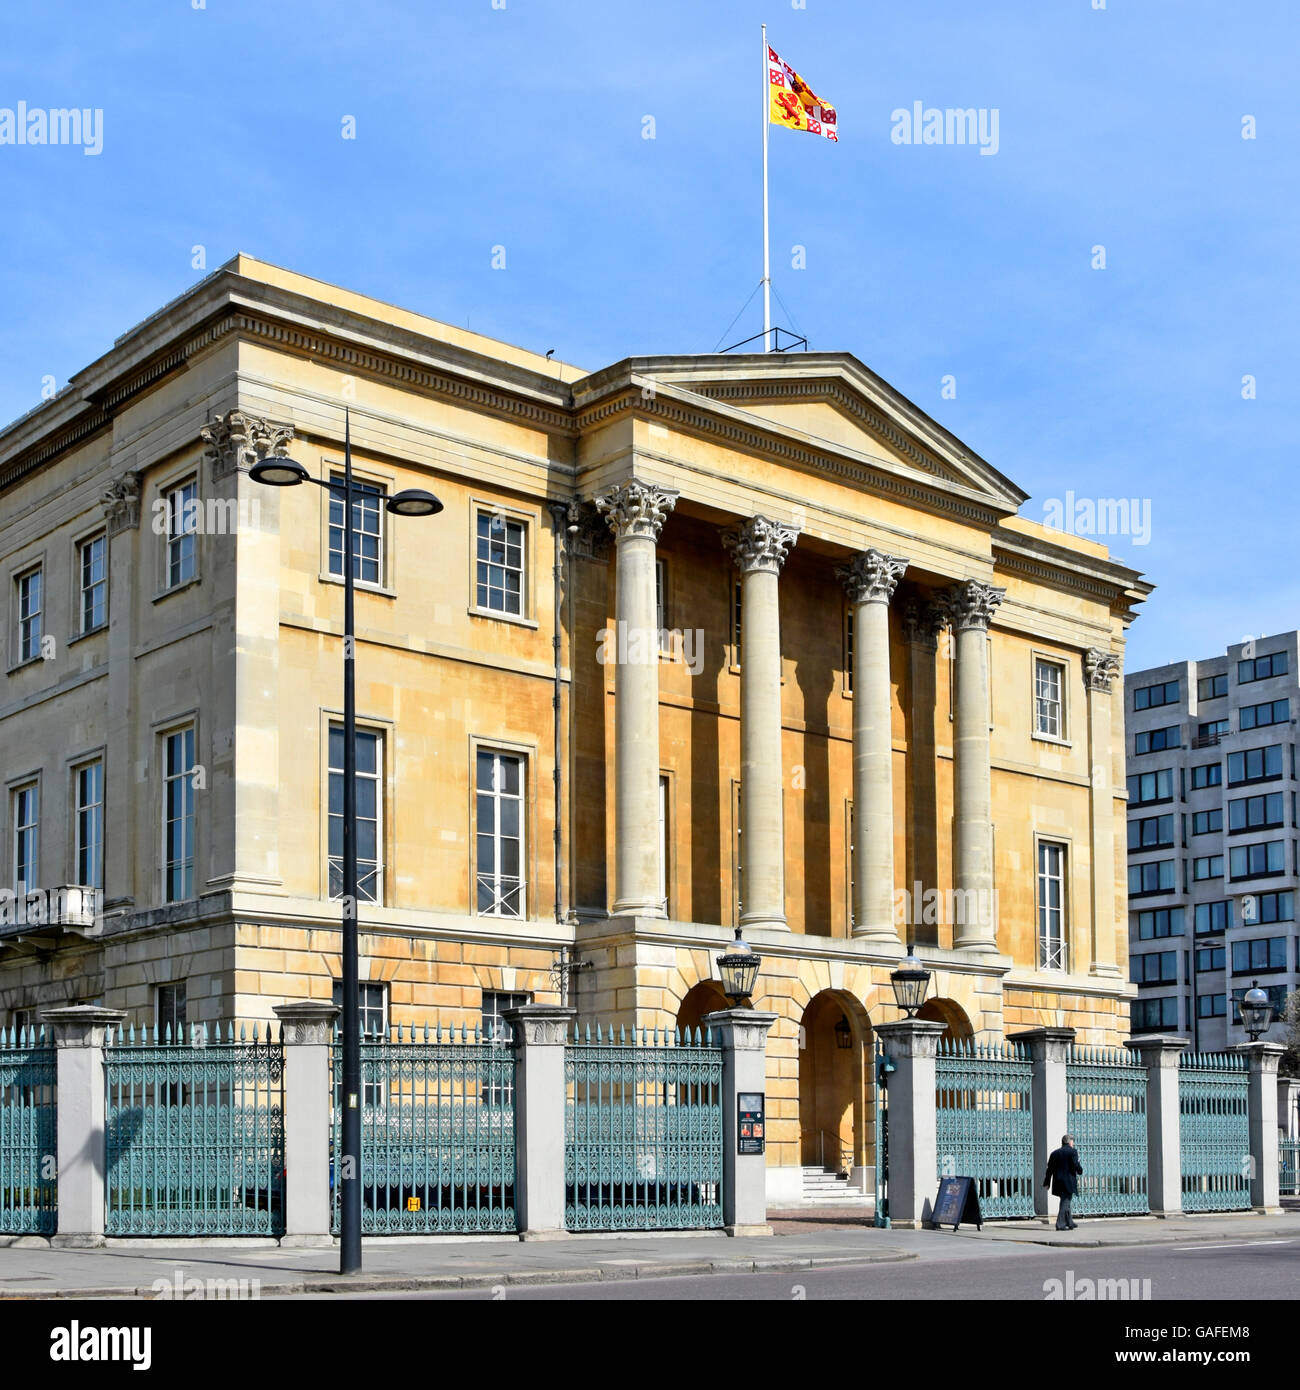 Apsley House London townhouse of Duke of Wellington also known as Number One London & open as museum & art - Stock Image